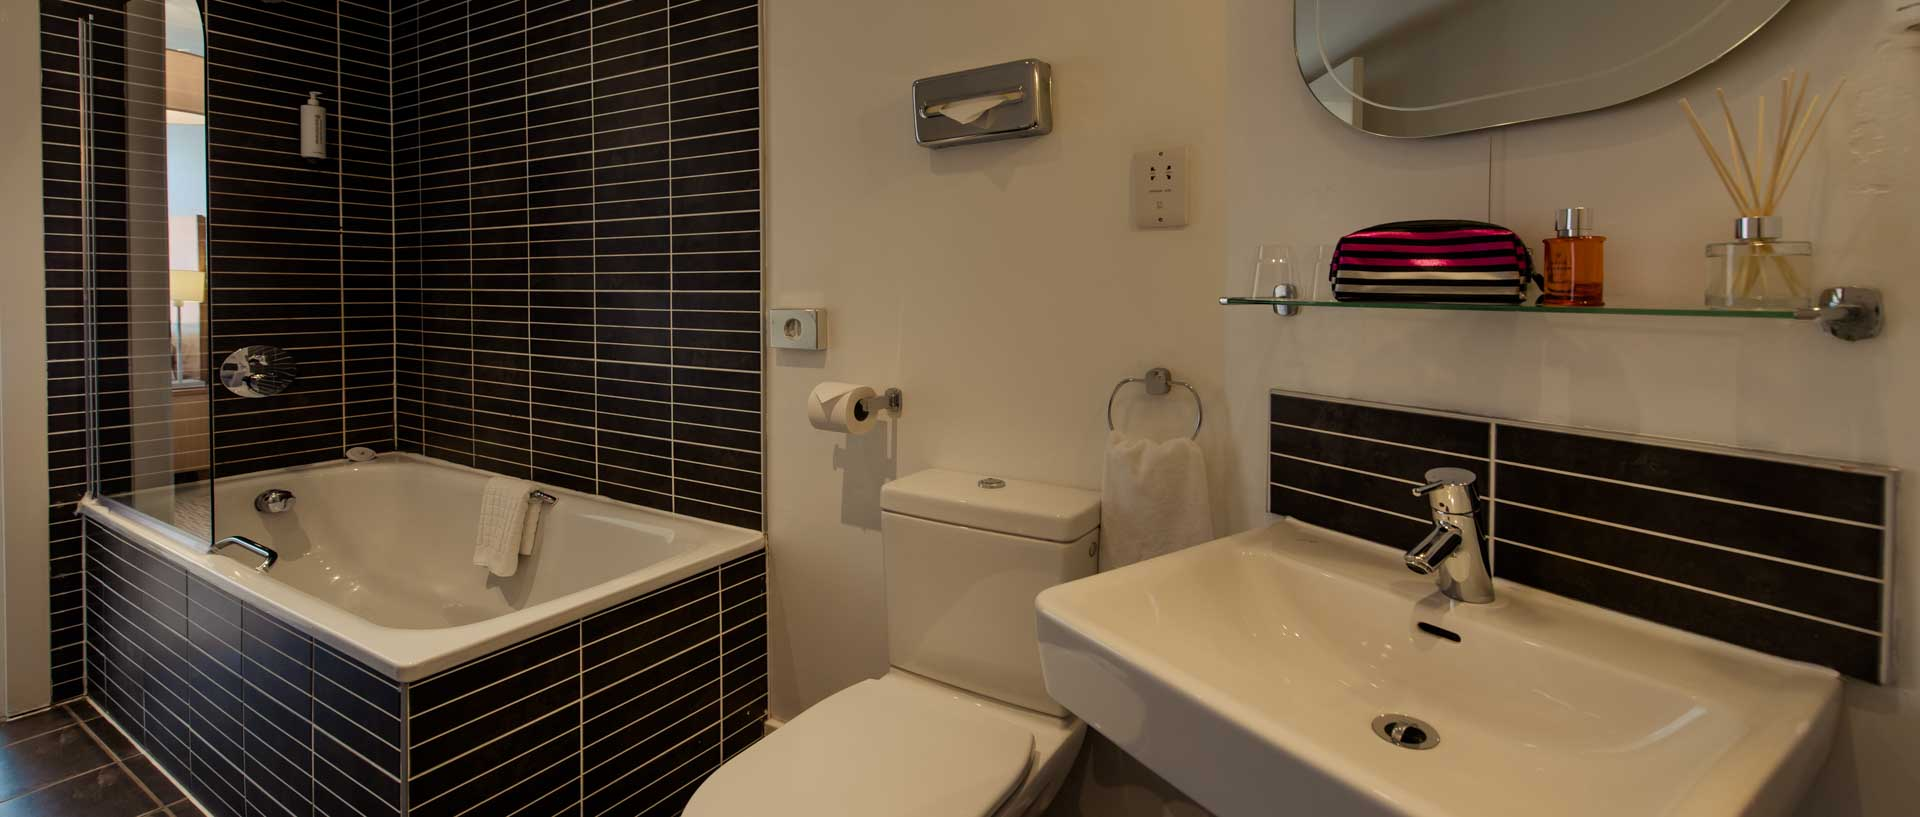 PREMIER SUITES PLUS Liverpool bathroom